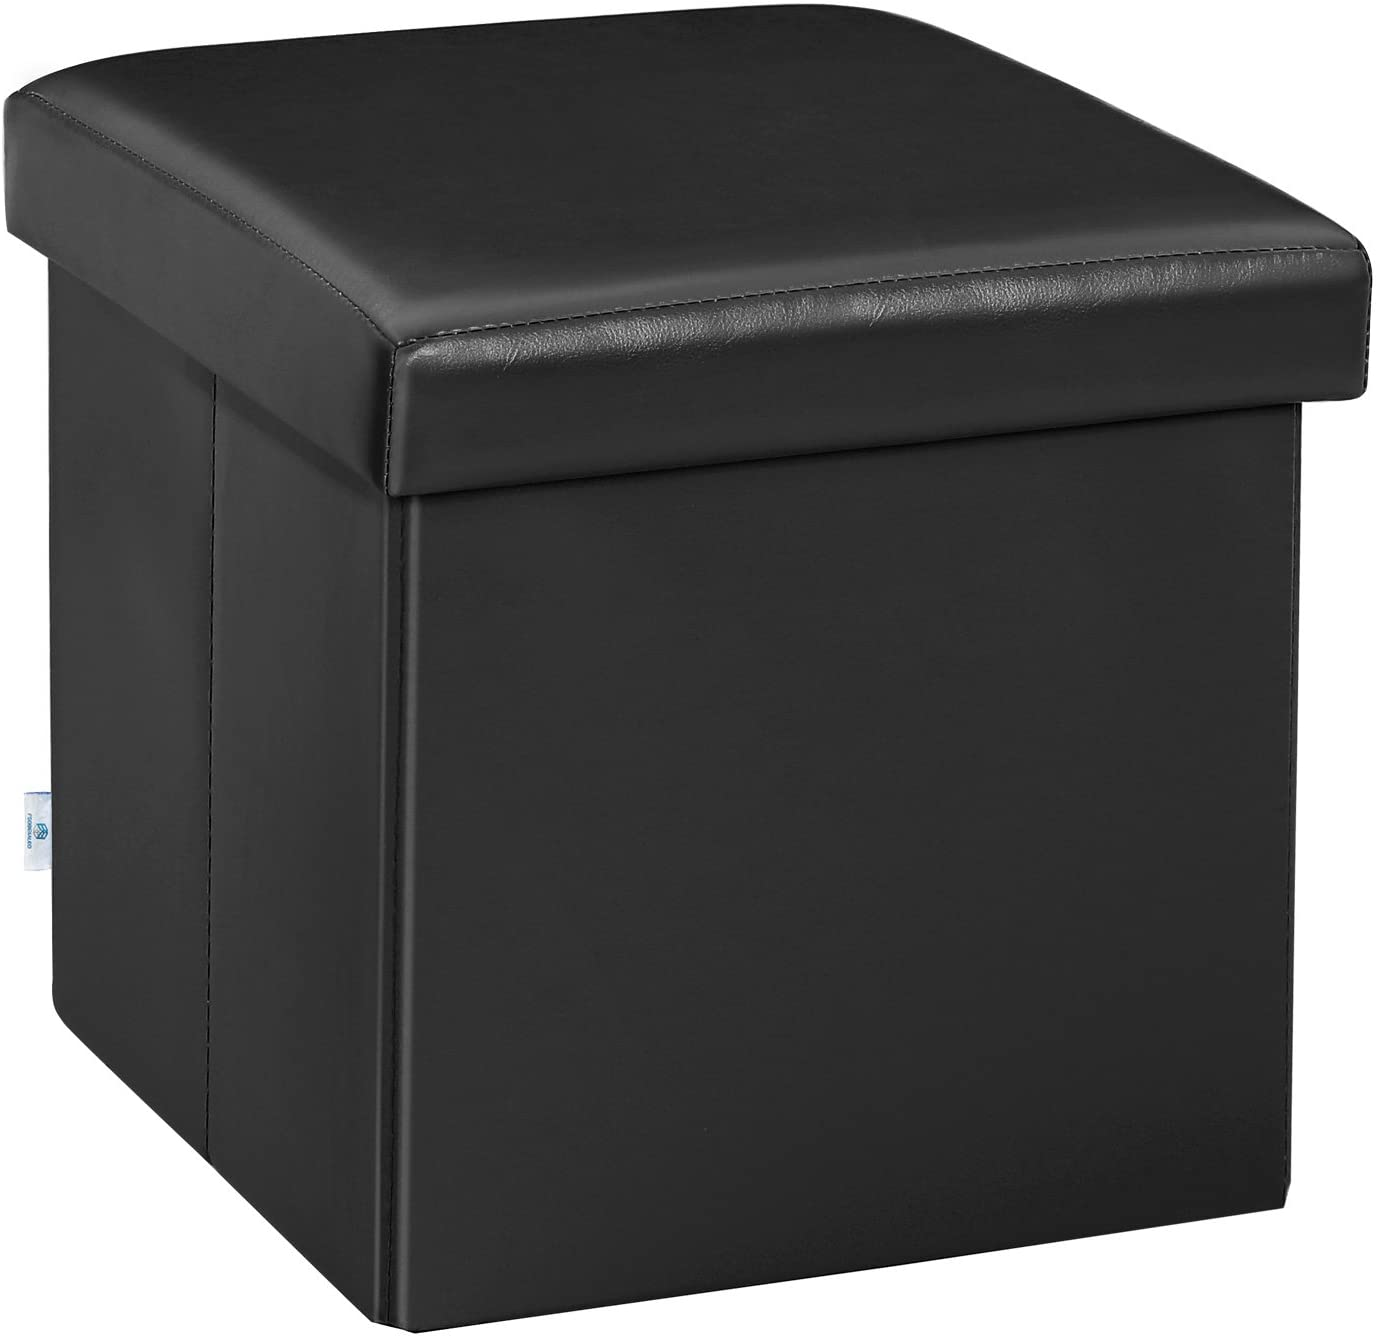 "B FSOBEIIALEO Folding Storage Ottoman Cube with Faux Leather Toy Chest Footrest for Baby Black 11.8""x11.8""x11.8"""